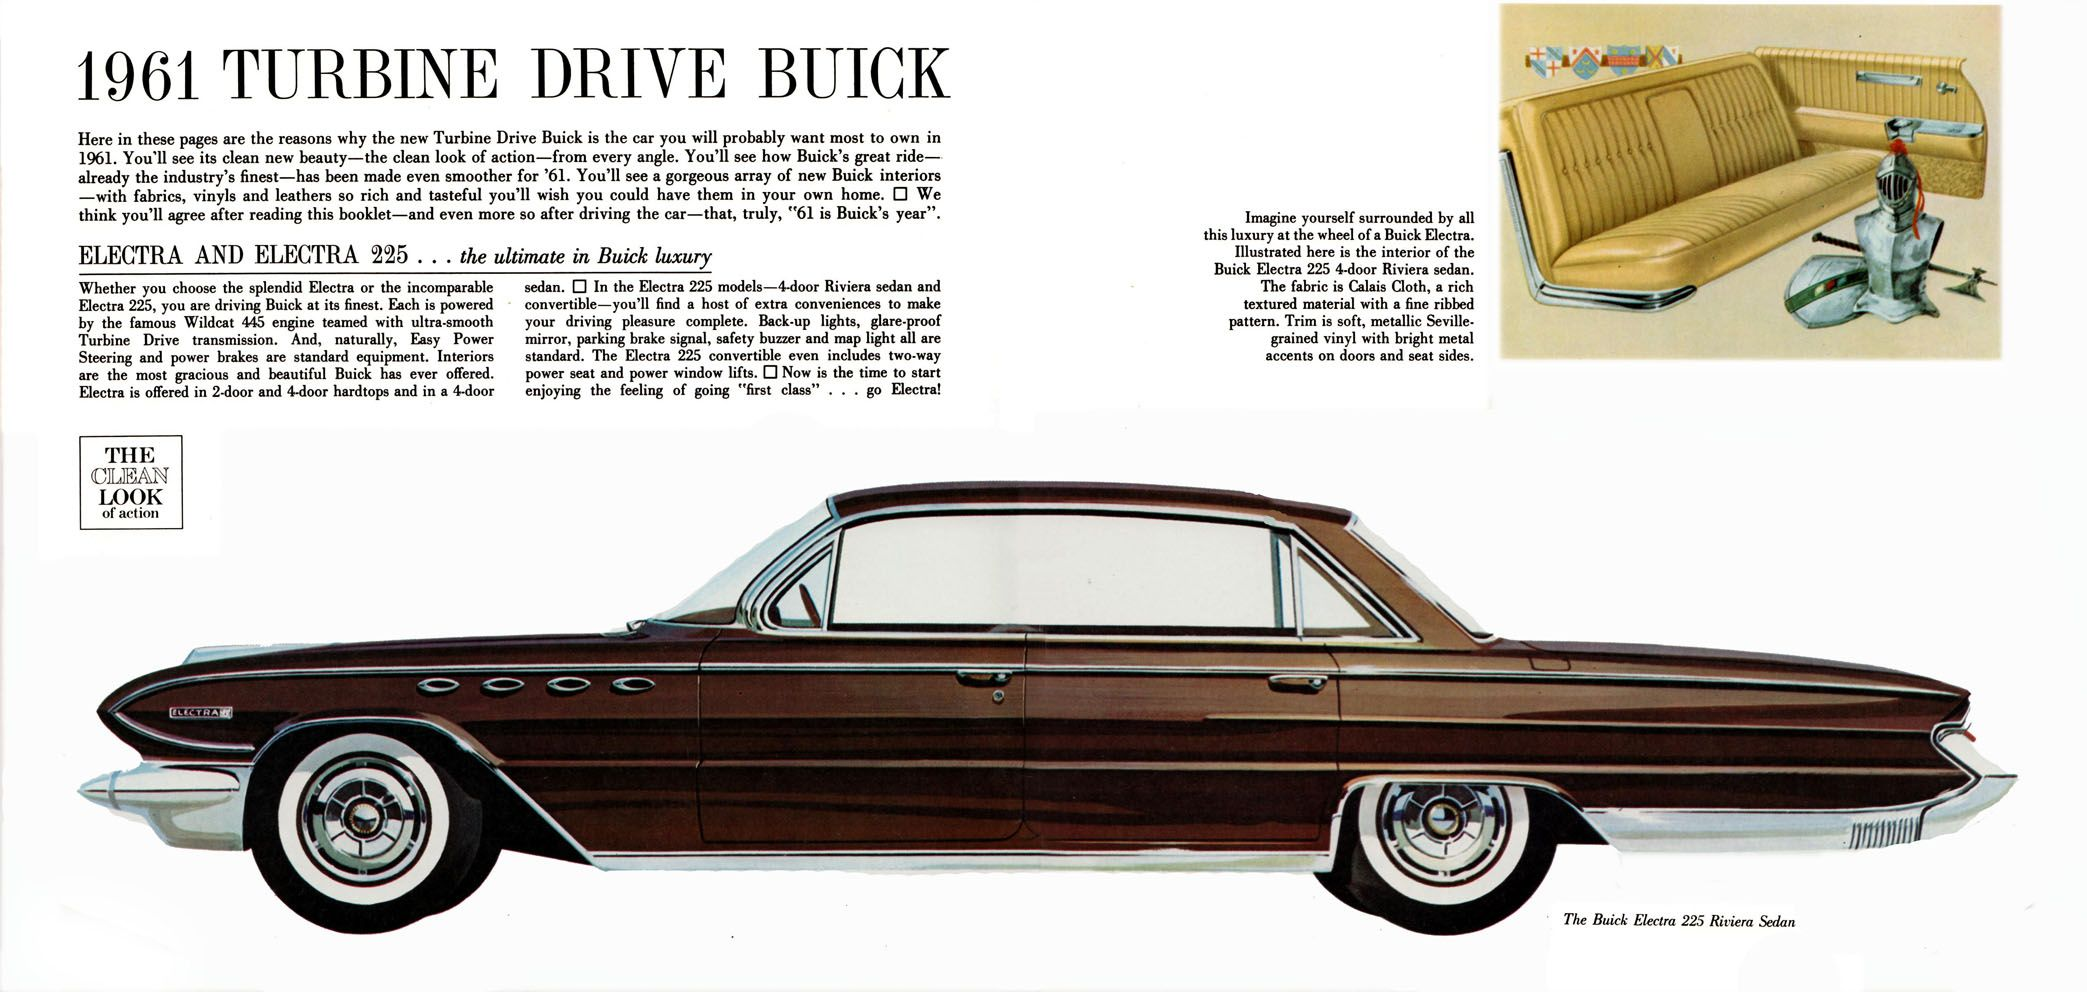 hight resolution of 1961 buick electra 225 riviera sedan